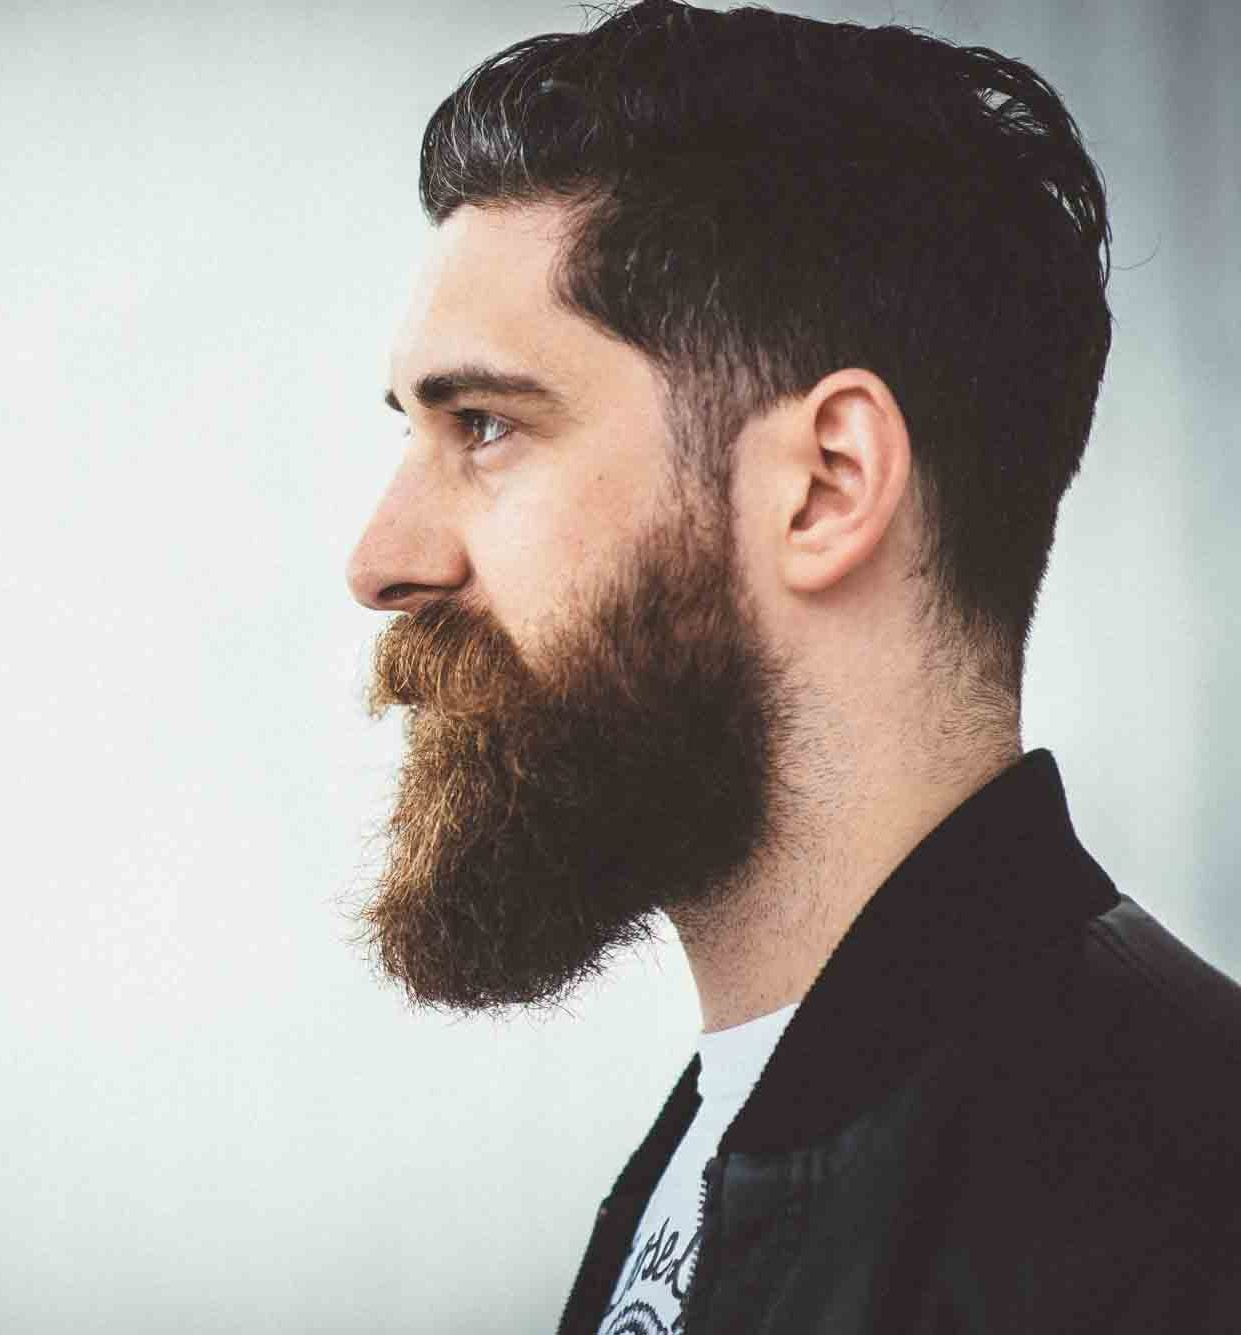 beard styles for with hair beard styles and tips on growing and styling beard 8867